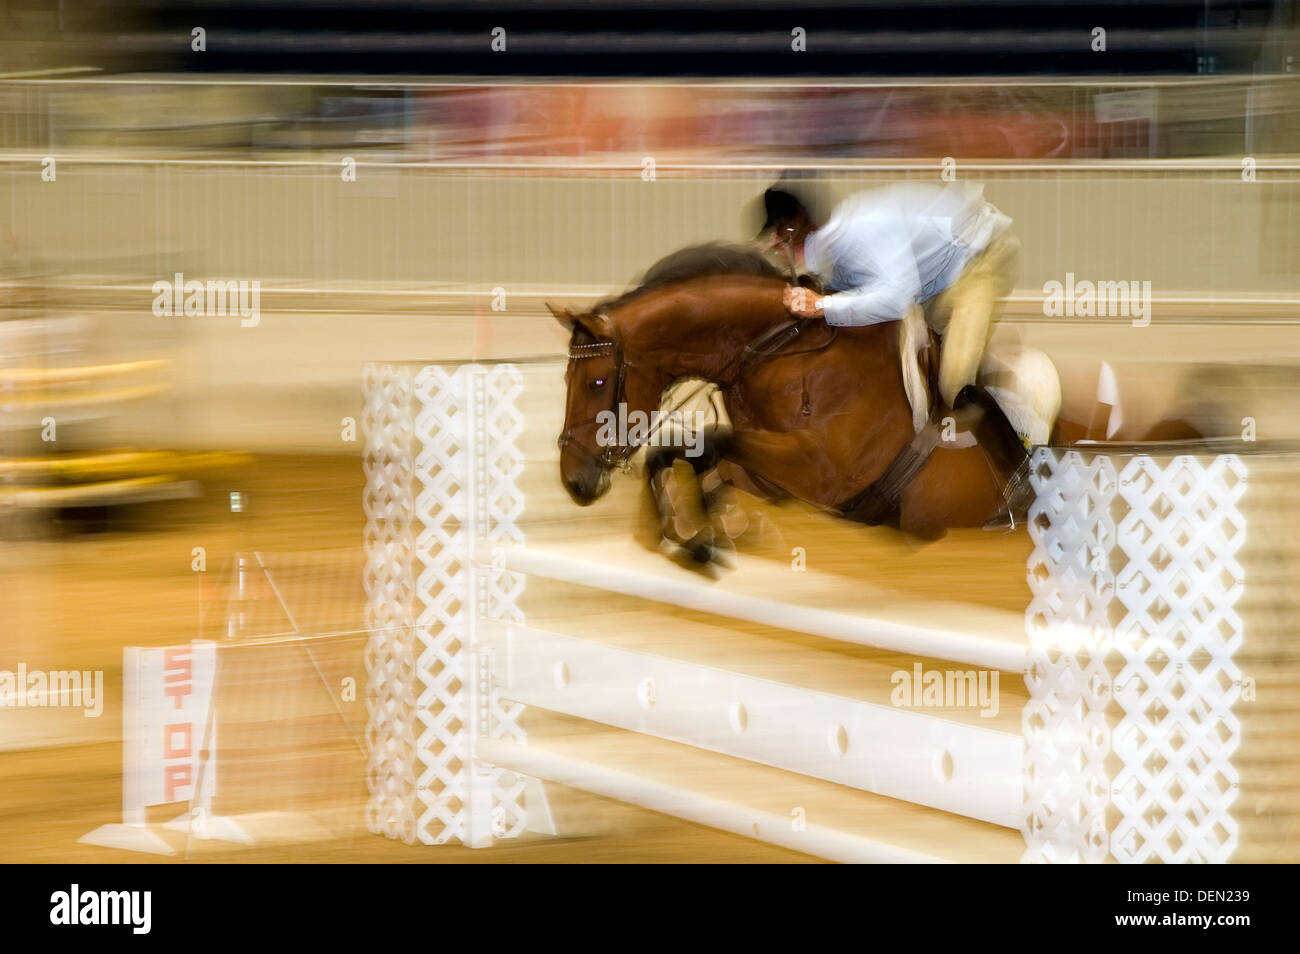 Horse jumping Tournament - Stock Image